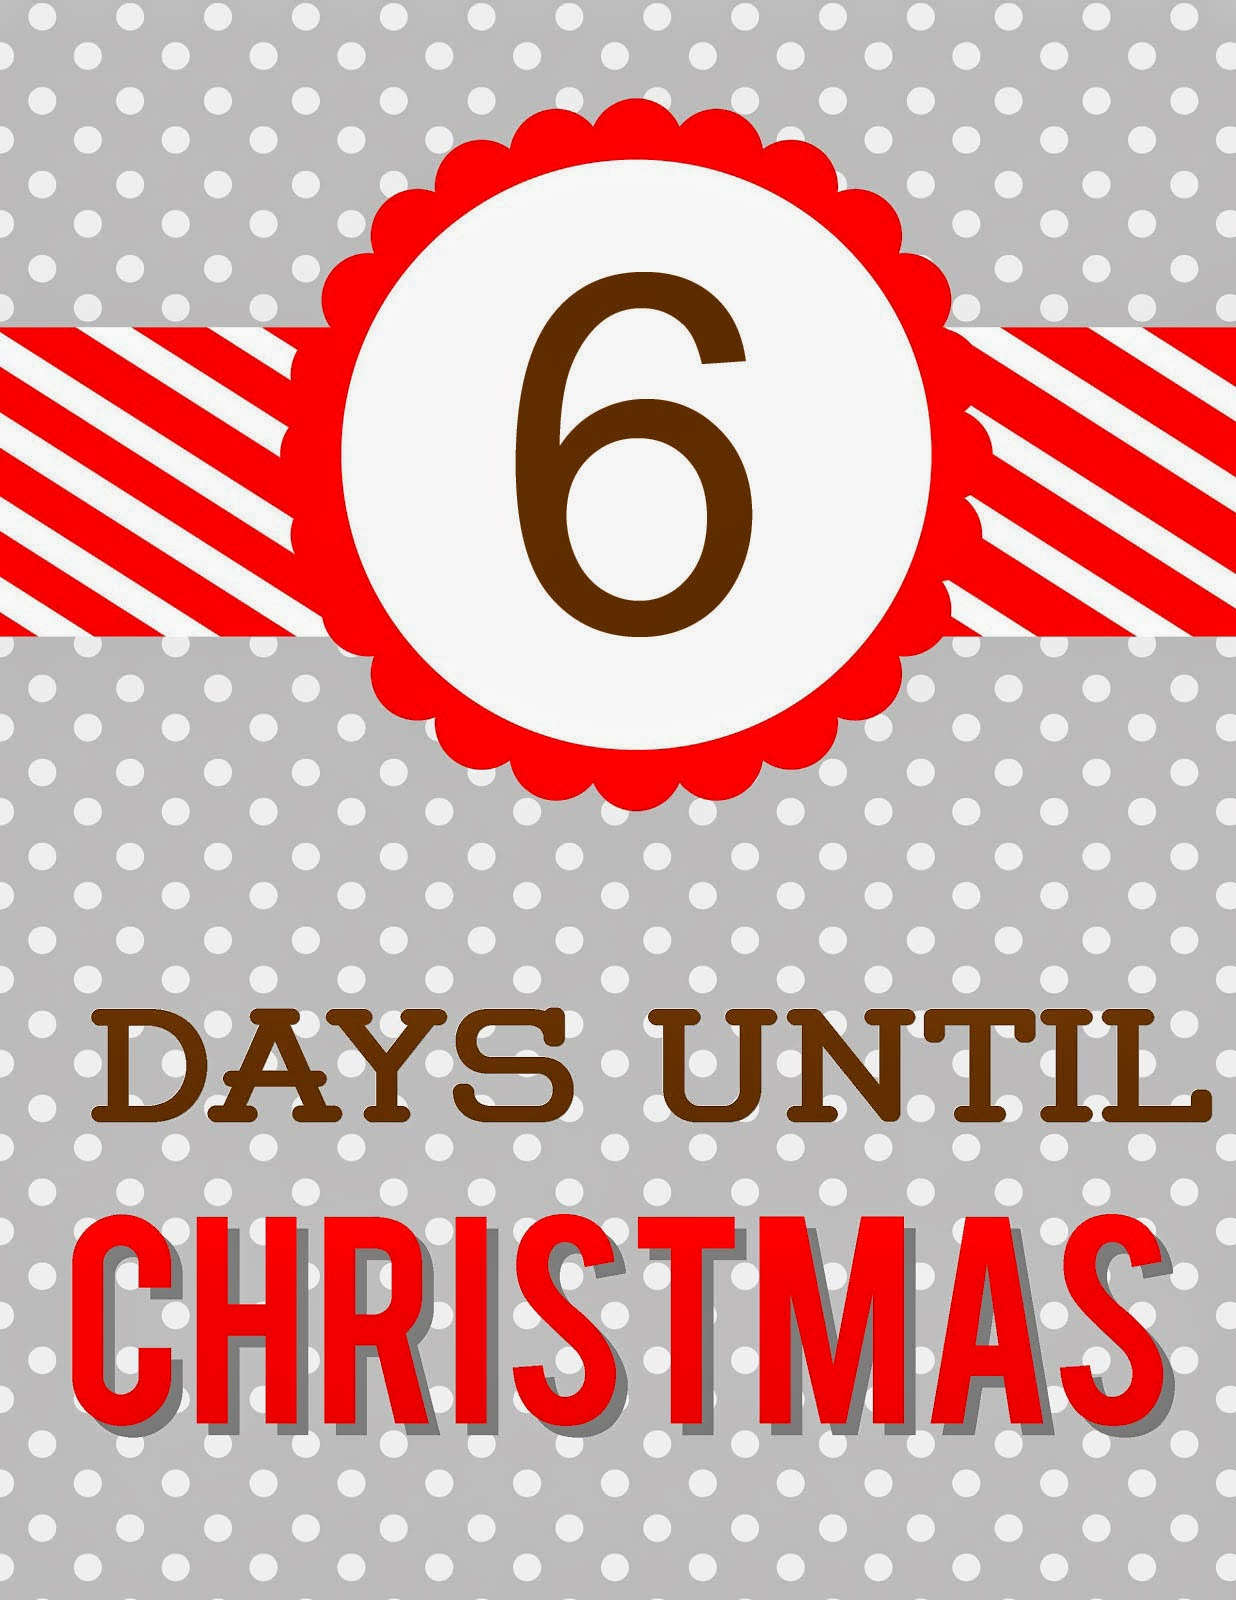 Christmas countdown video is hallelujah christmas by cloverton